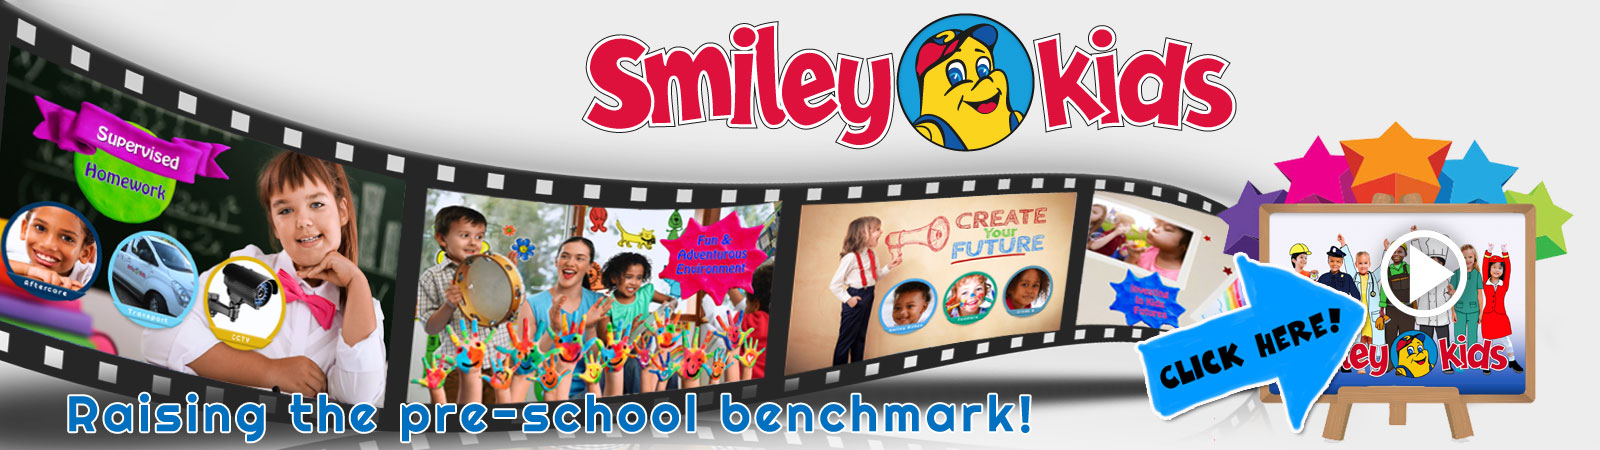 Smiley Kids Lambton Video